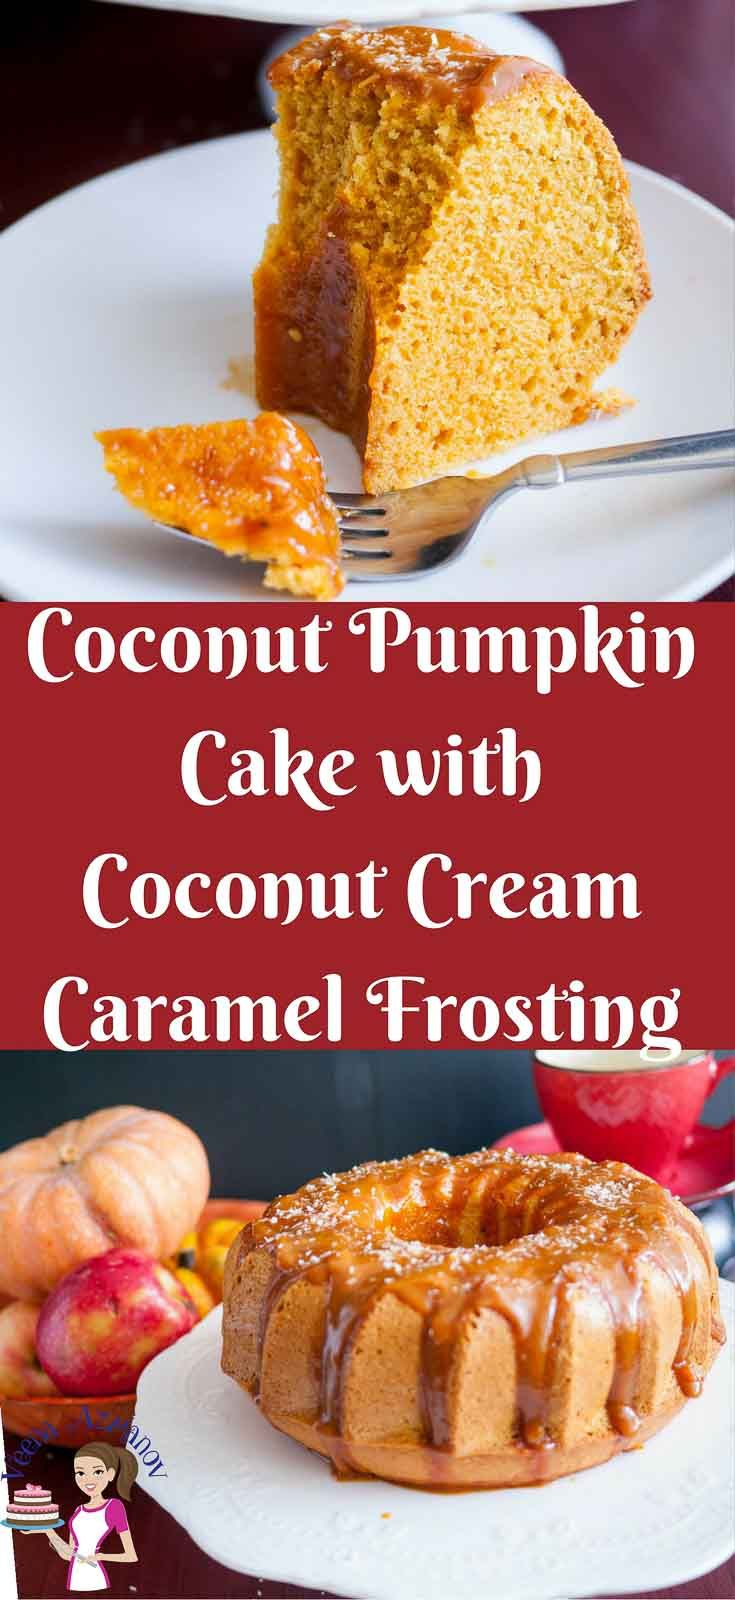 Pinterest image for Coconut Pumpkin Cake with Coconut Cream Caramel Frosting